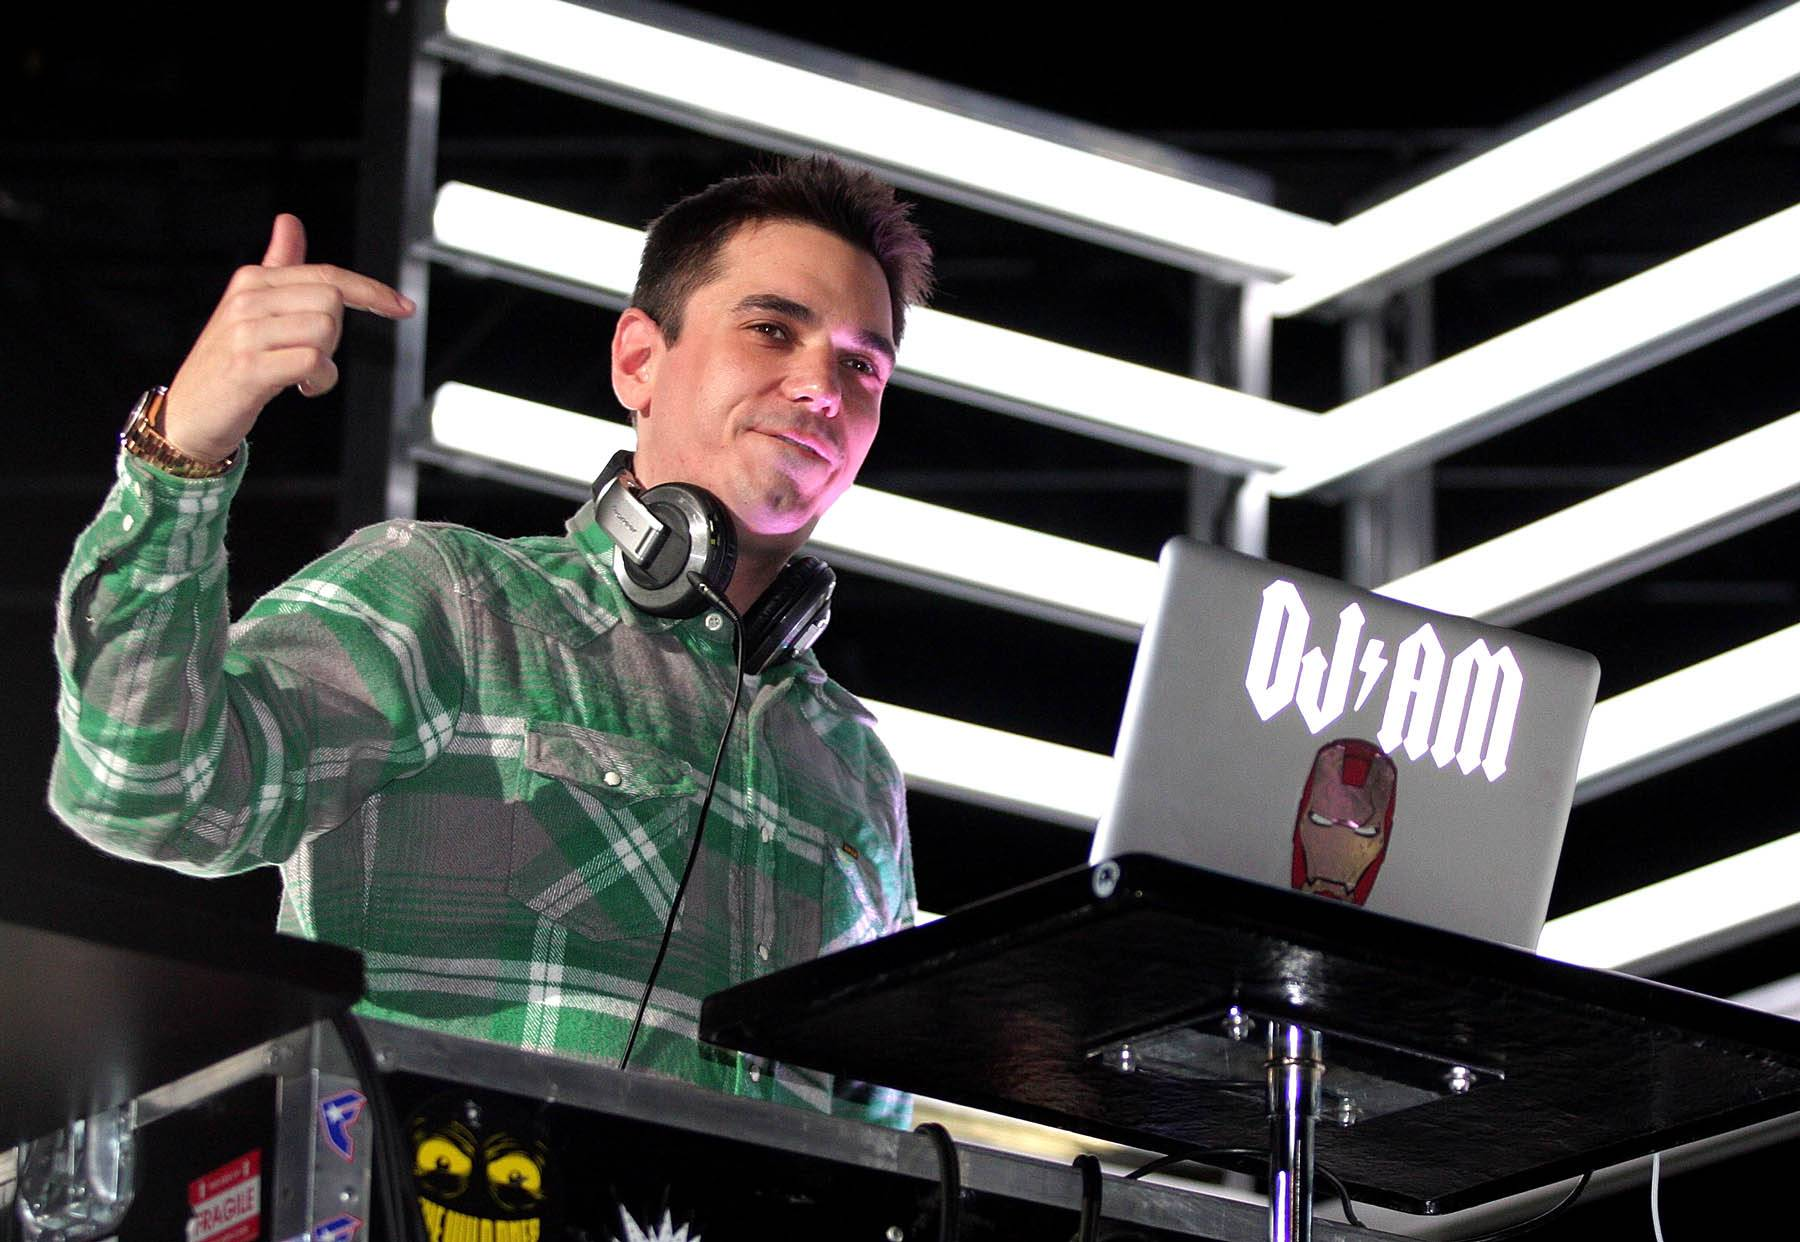 29. DJ AM - The late DJ AM infiltrated Hollywood like few other DJs before him, dating Nicole Ritchie and Mandy Moore, fleeing paparazzi cameras and playing the biggest, most exclusive celebrity-filled red-carpet events. But he backed it up with his skills on the tables, tearing down parties with clever mash-ups and scratching on albums by Madonna, Will Smith and Travis Barker. (Photo: Noel Vasquez/Getty Images)